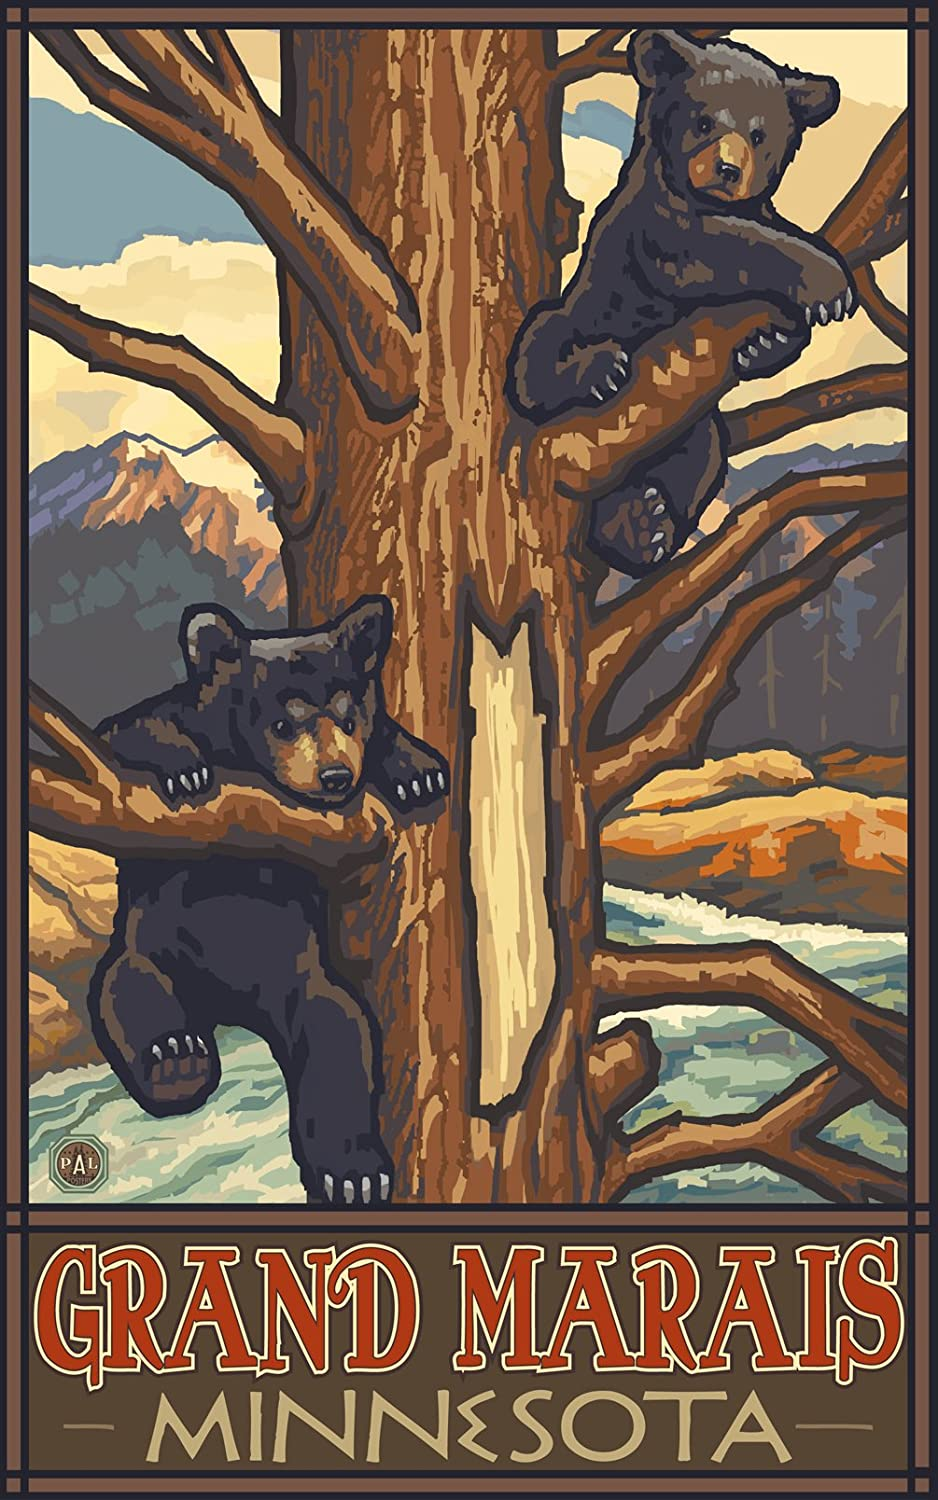 Northwest Art Mall Two Bear Cubs Grand Mariais Minnesota Artwork by Paul A 11-Inch by 17-Inch Lanquist